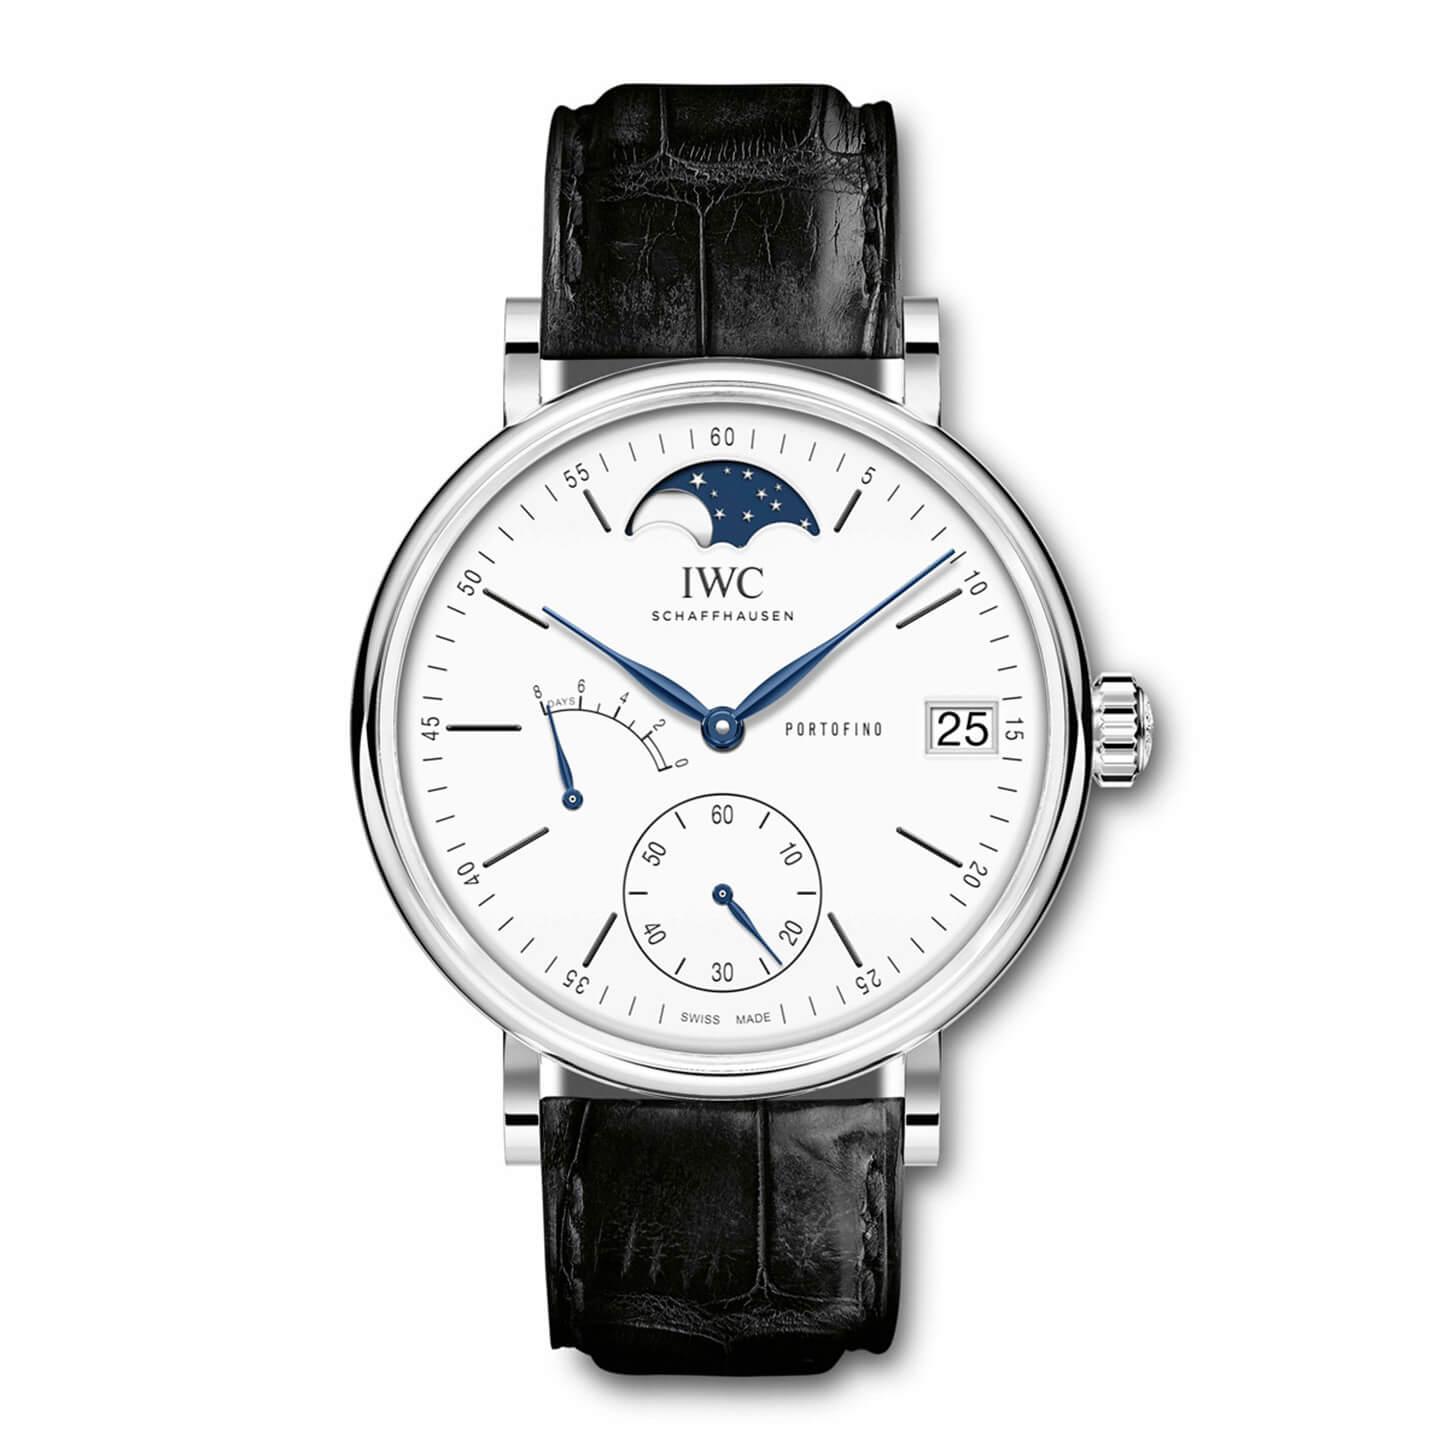 IWC Portofino Hand-Wound Moon Phase Edition 150 Years IW516406 Replica